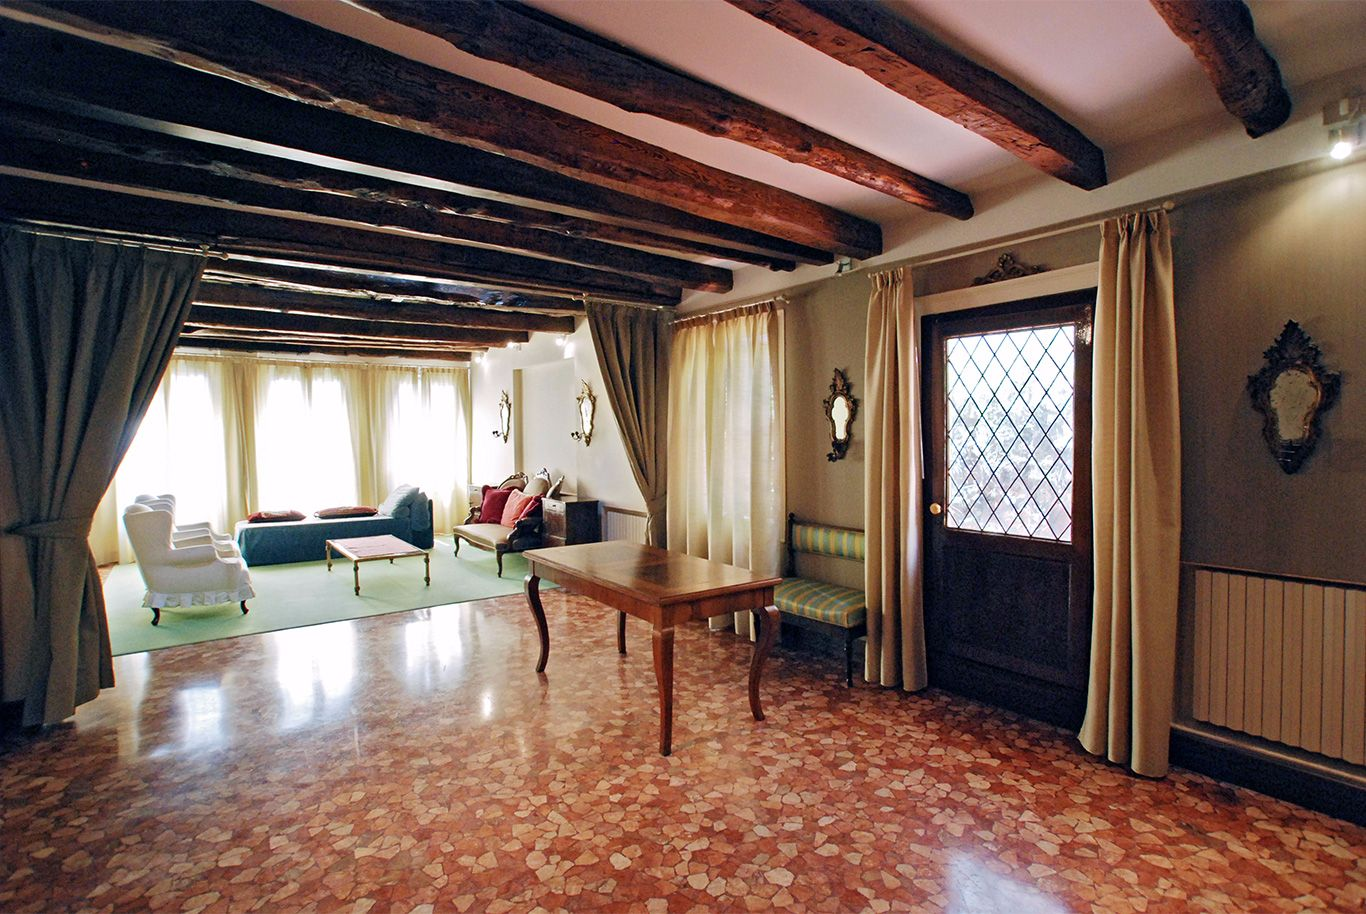 spacious entrance room with access to the terrace